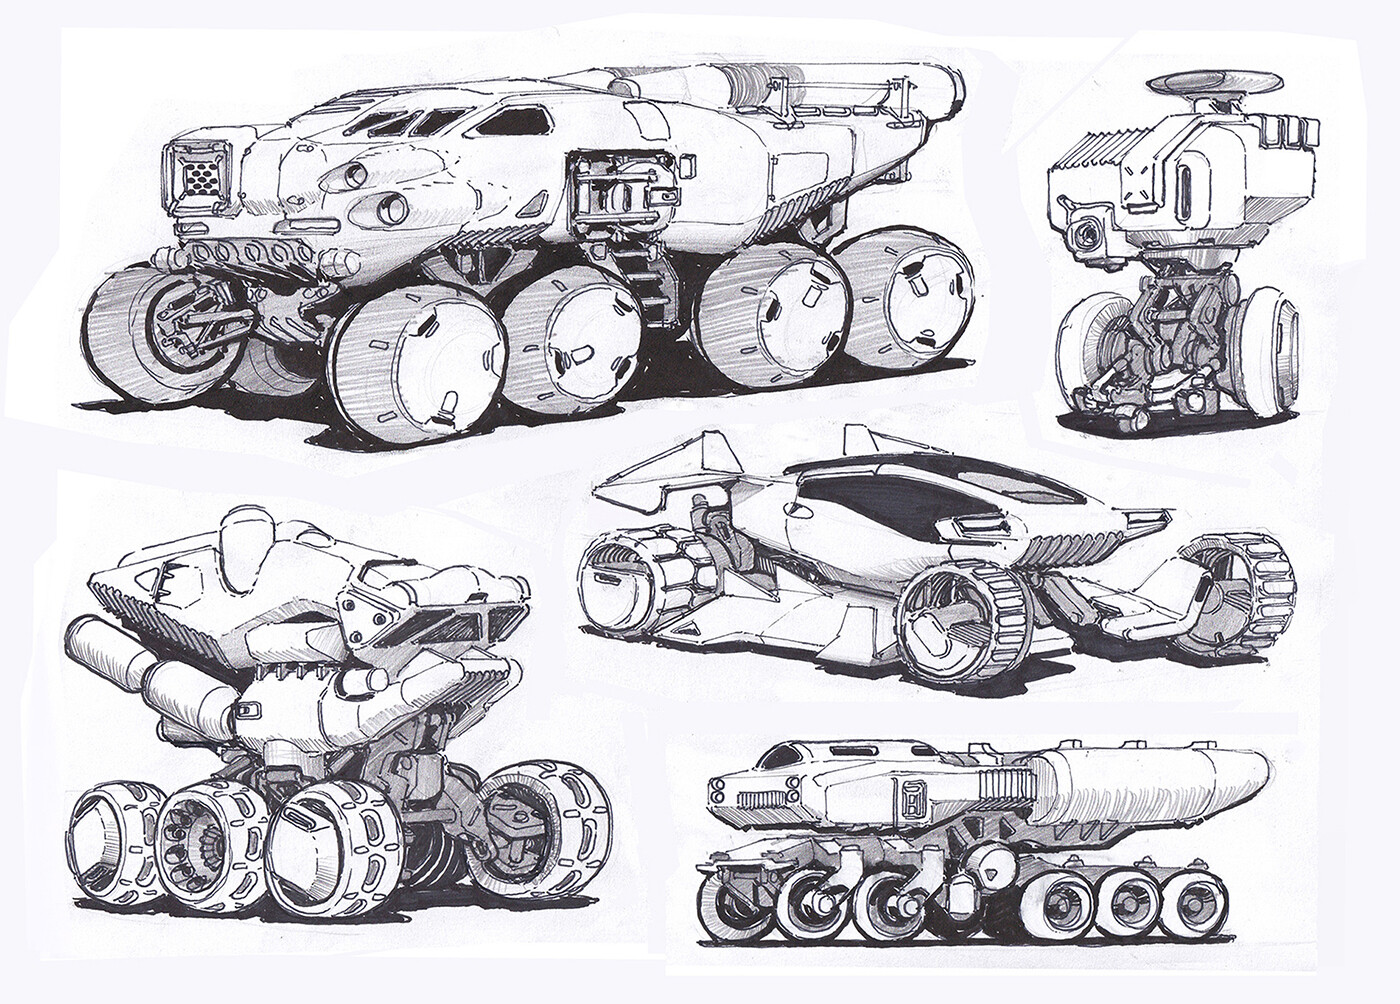 Vehicles concepts with varied axis-counts